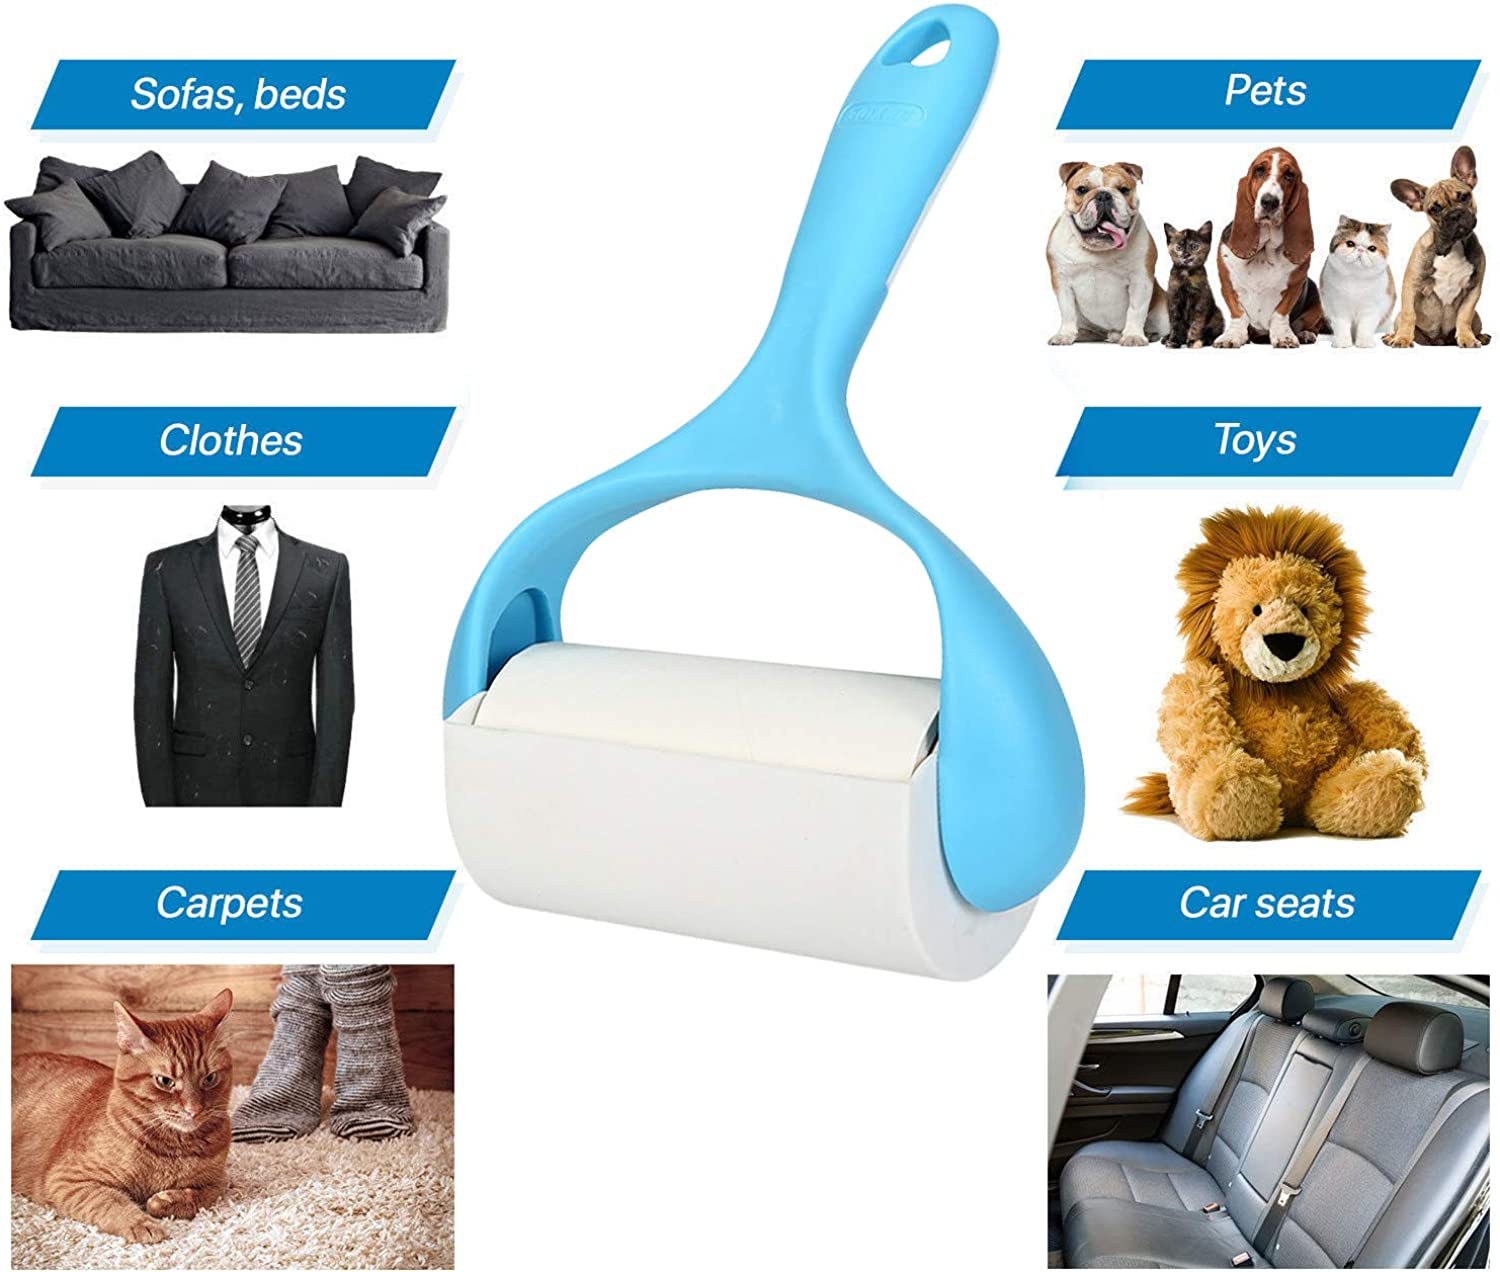 NTEX Pet Hair Remover Rollers Dog & Cat Lint Brush for Clothes,Carpet,Car Seats 1 Lint Roller Brush and 2 Refills 60 Sheets (bluee)